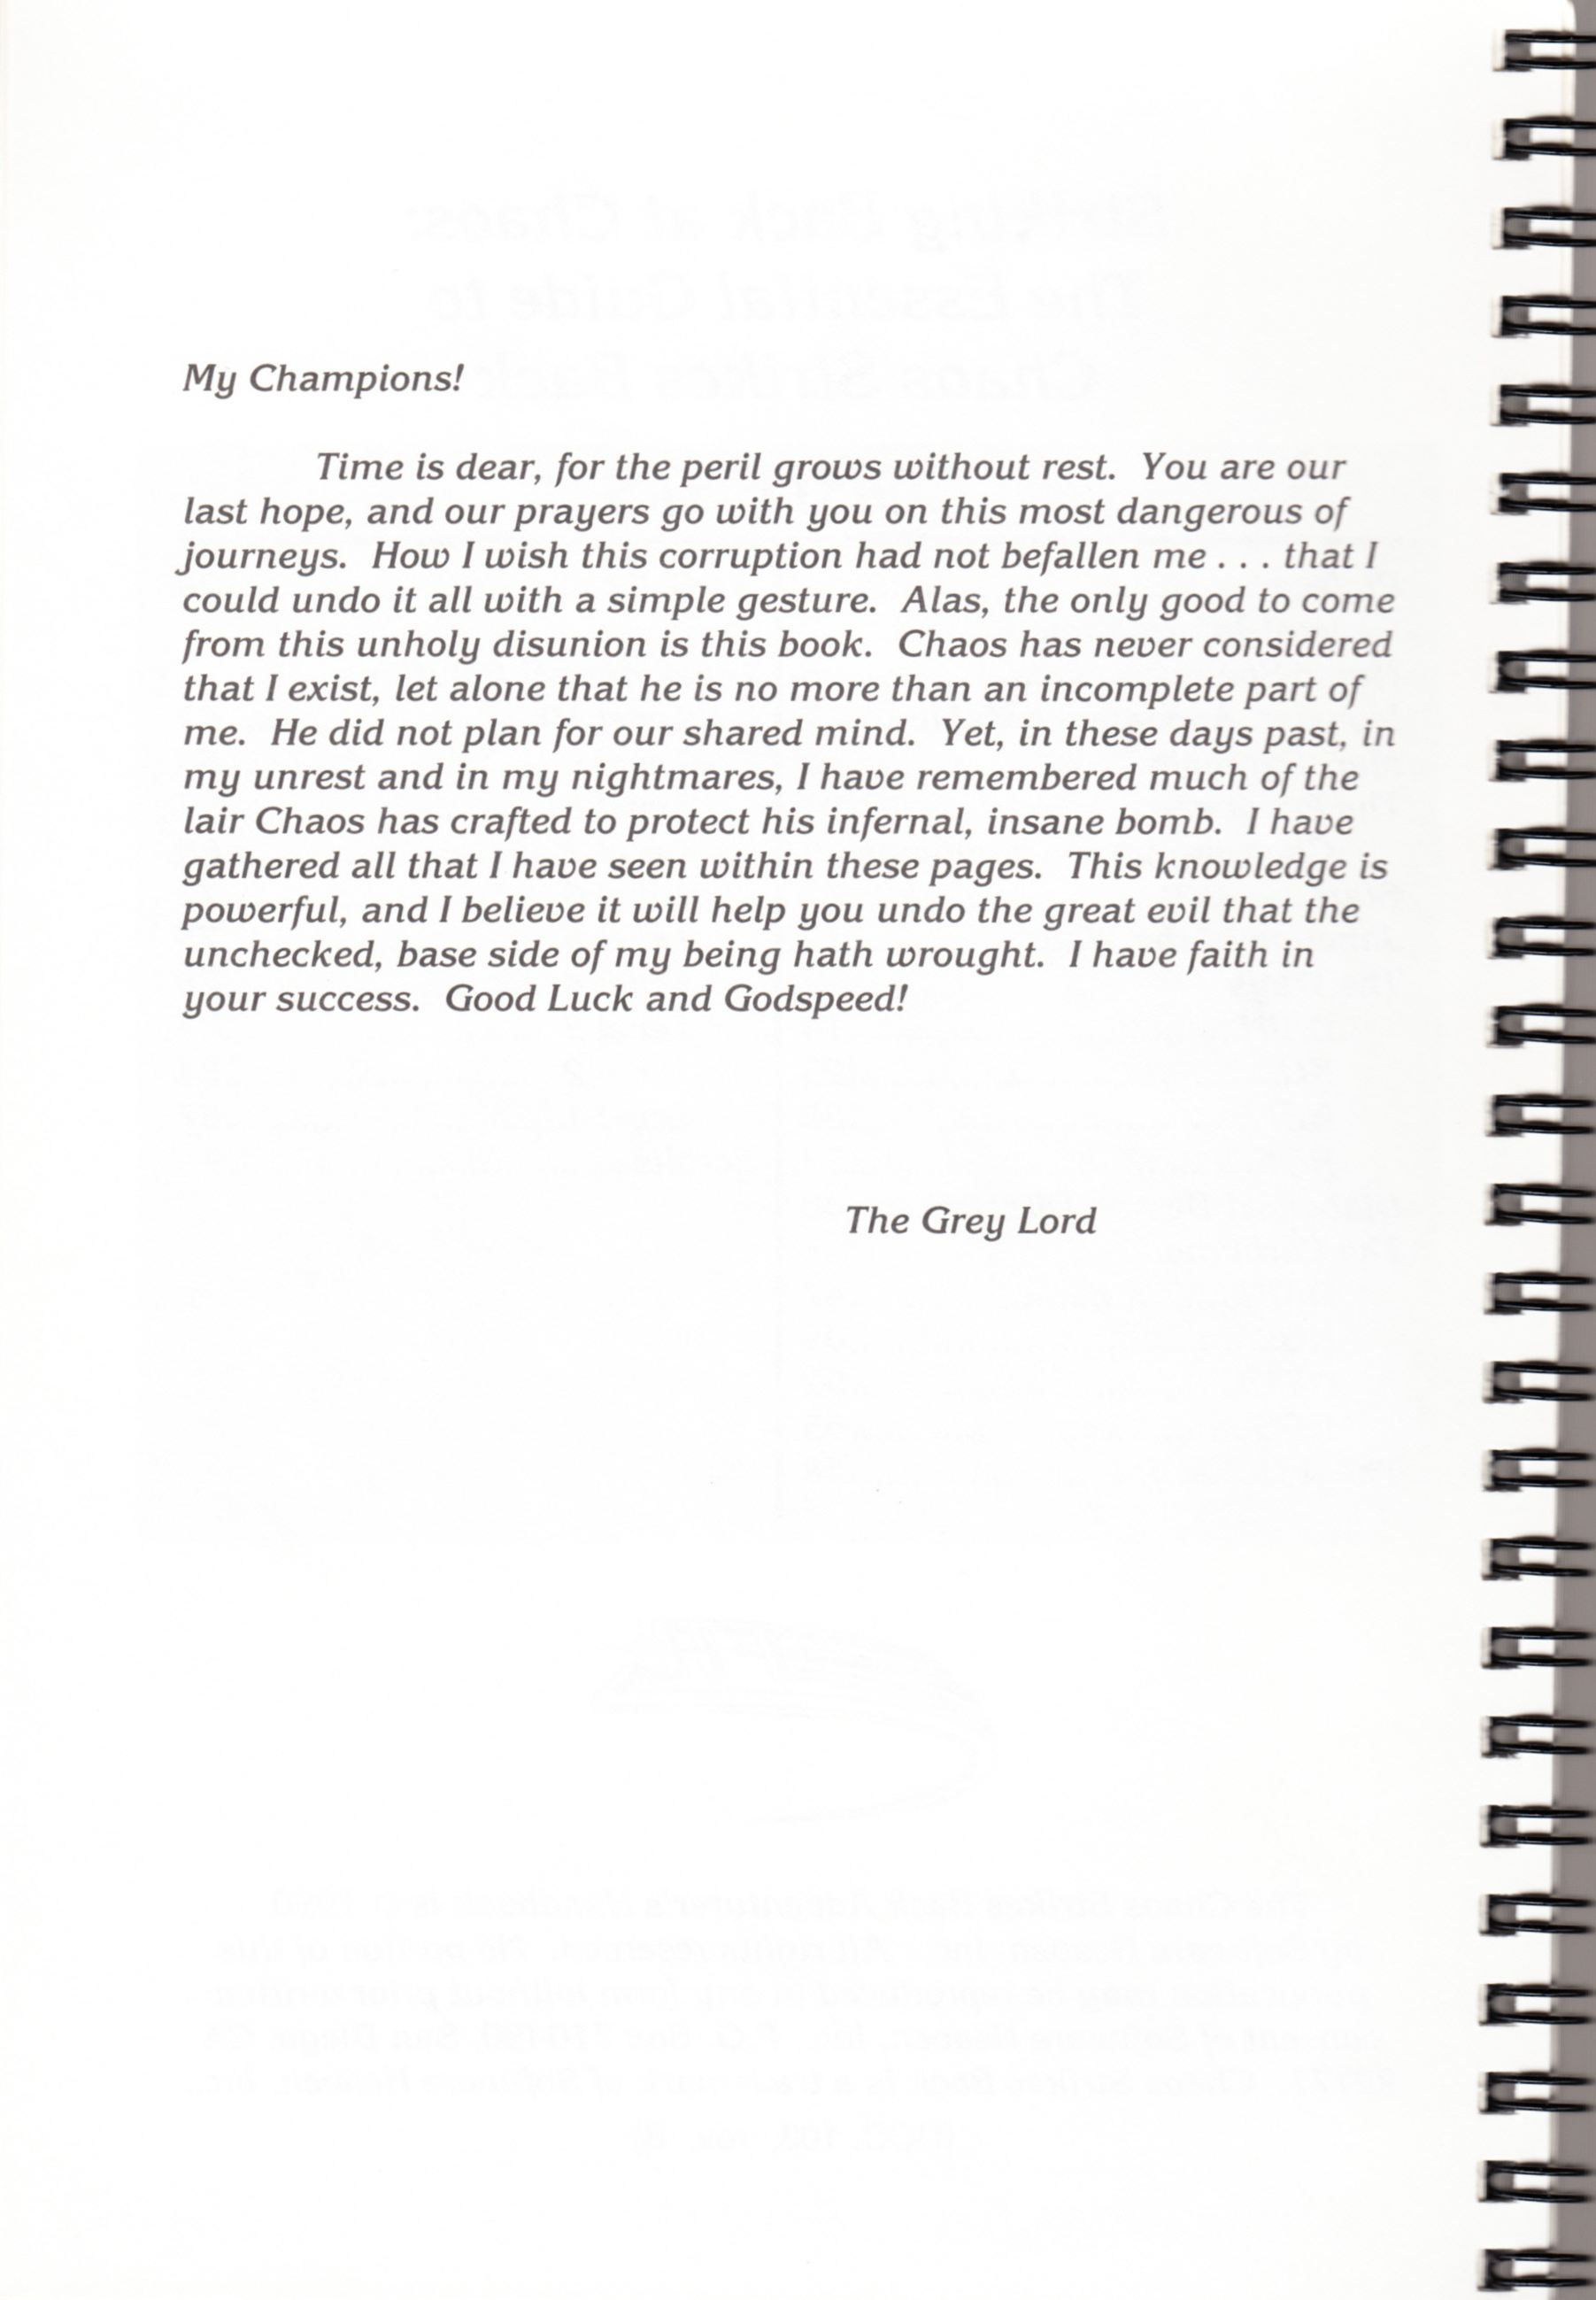 Hint Book - Chaos Strikes Back Adventurer's Handbook - US - Page 006 - Scan